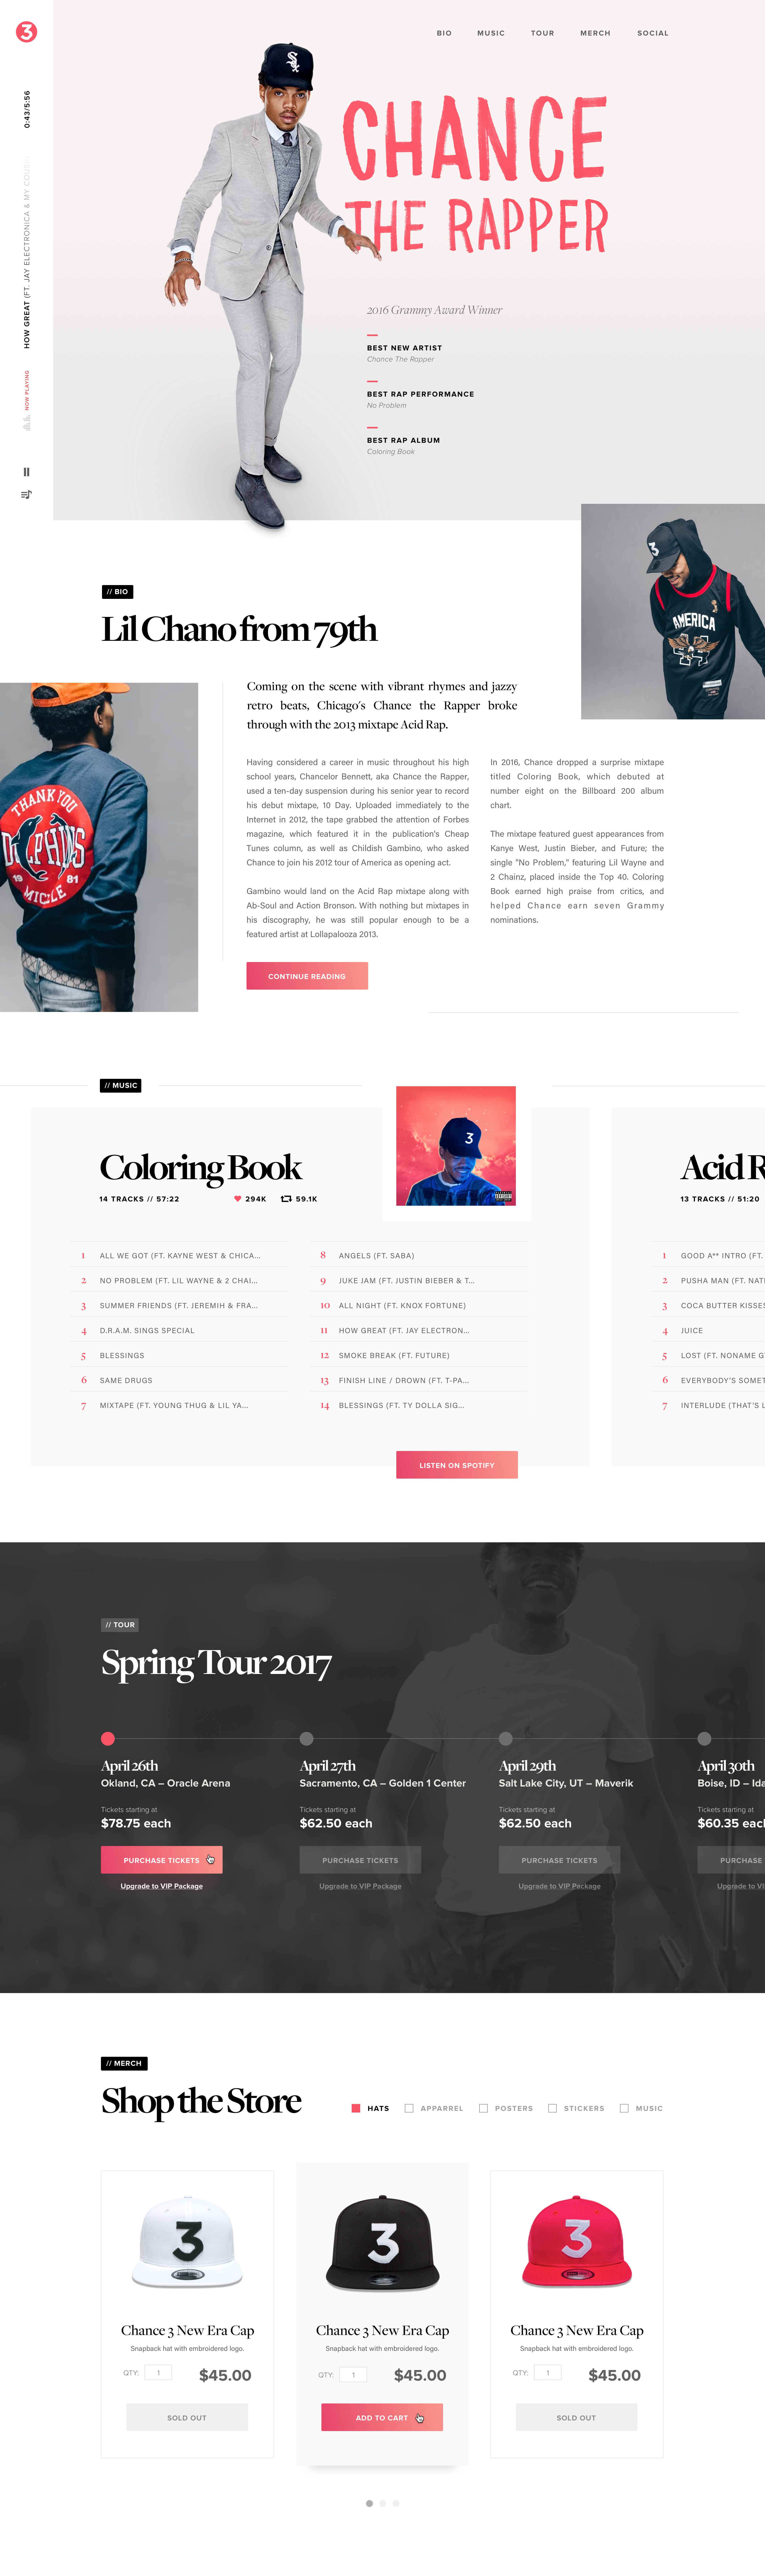 Change the rapper landing page 2x